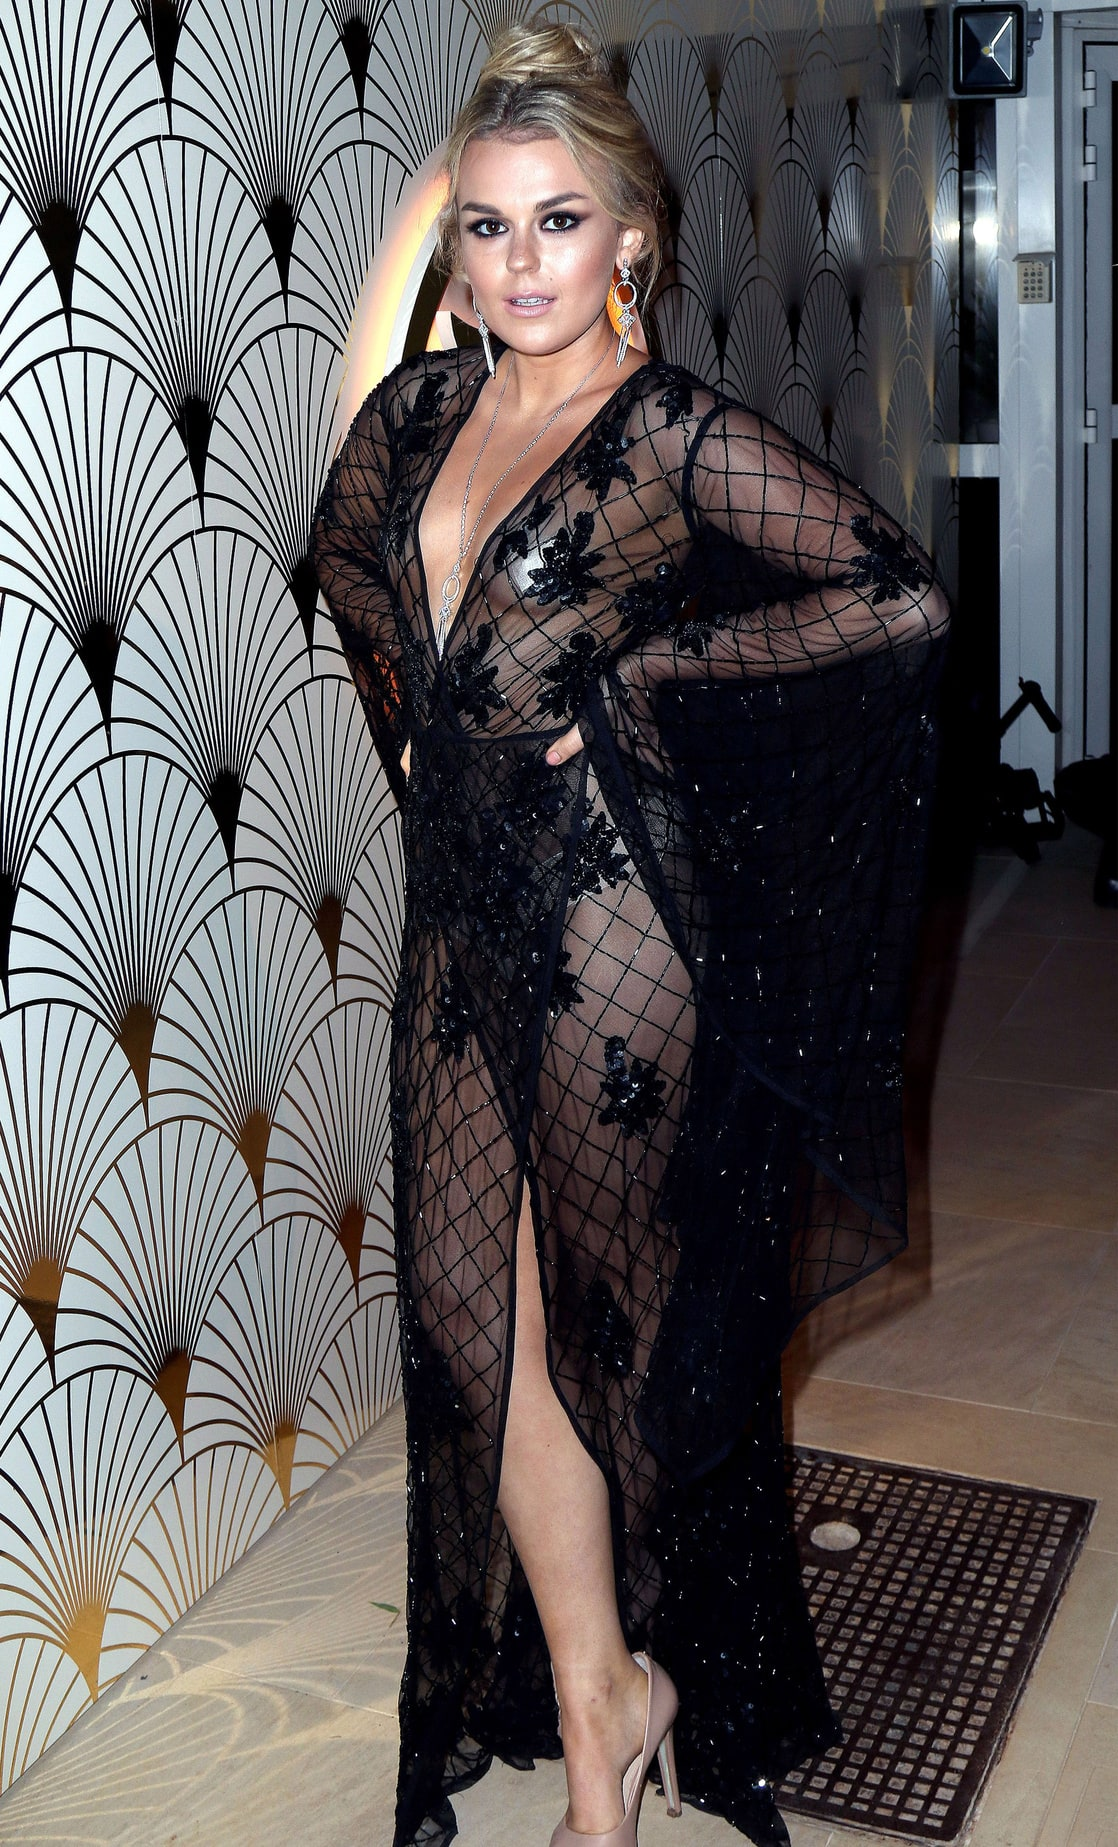 Watch Tallia storm see through video